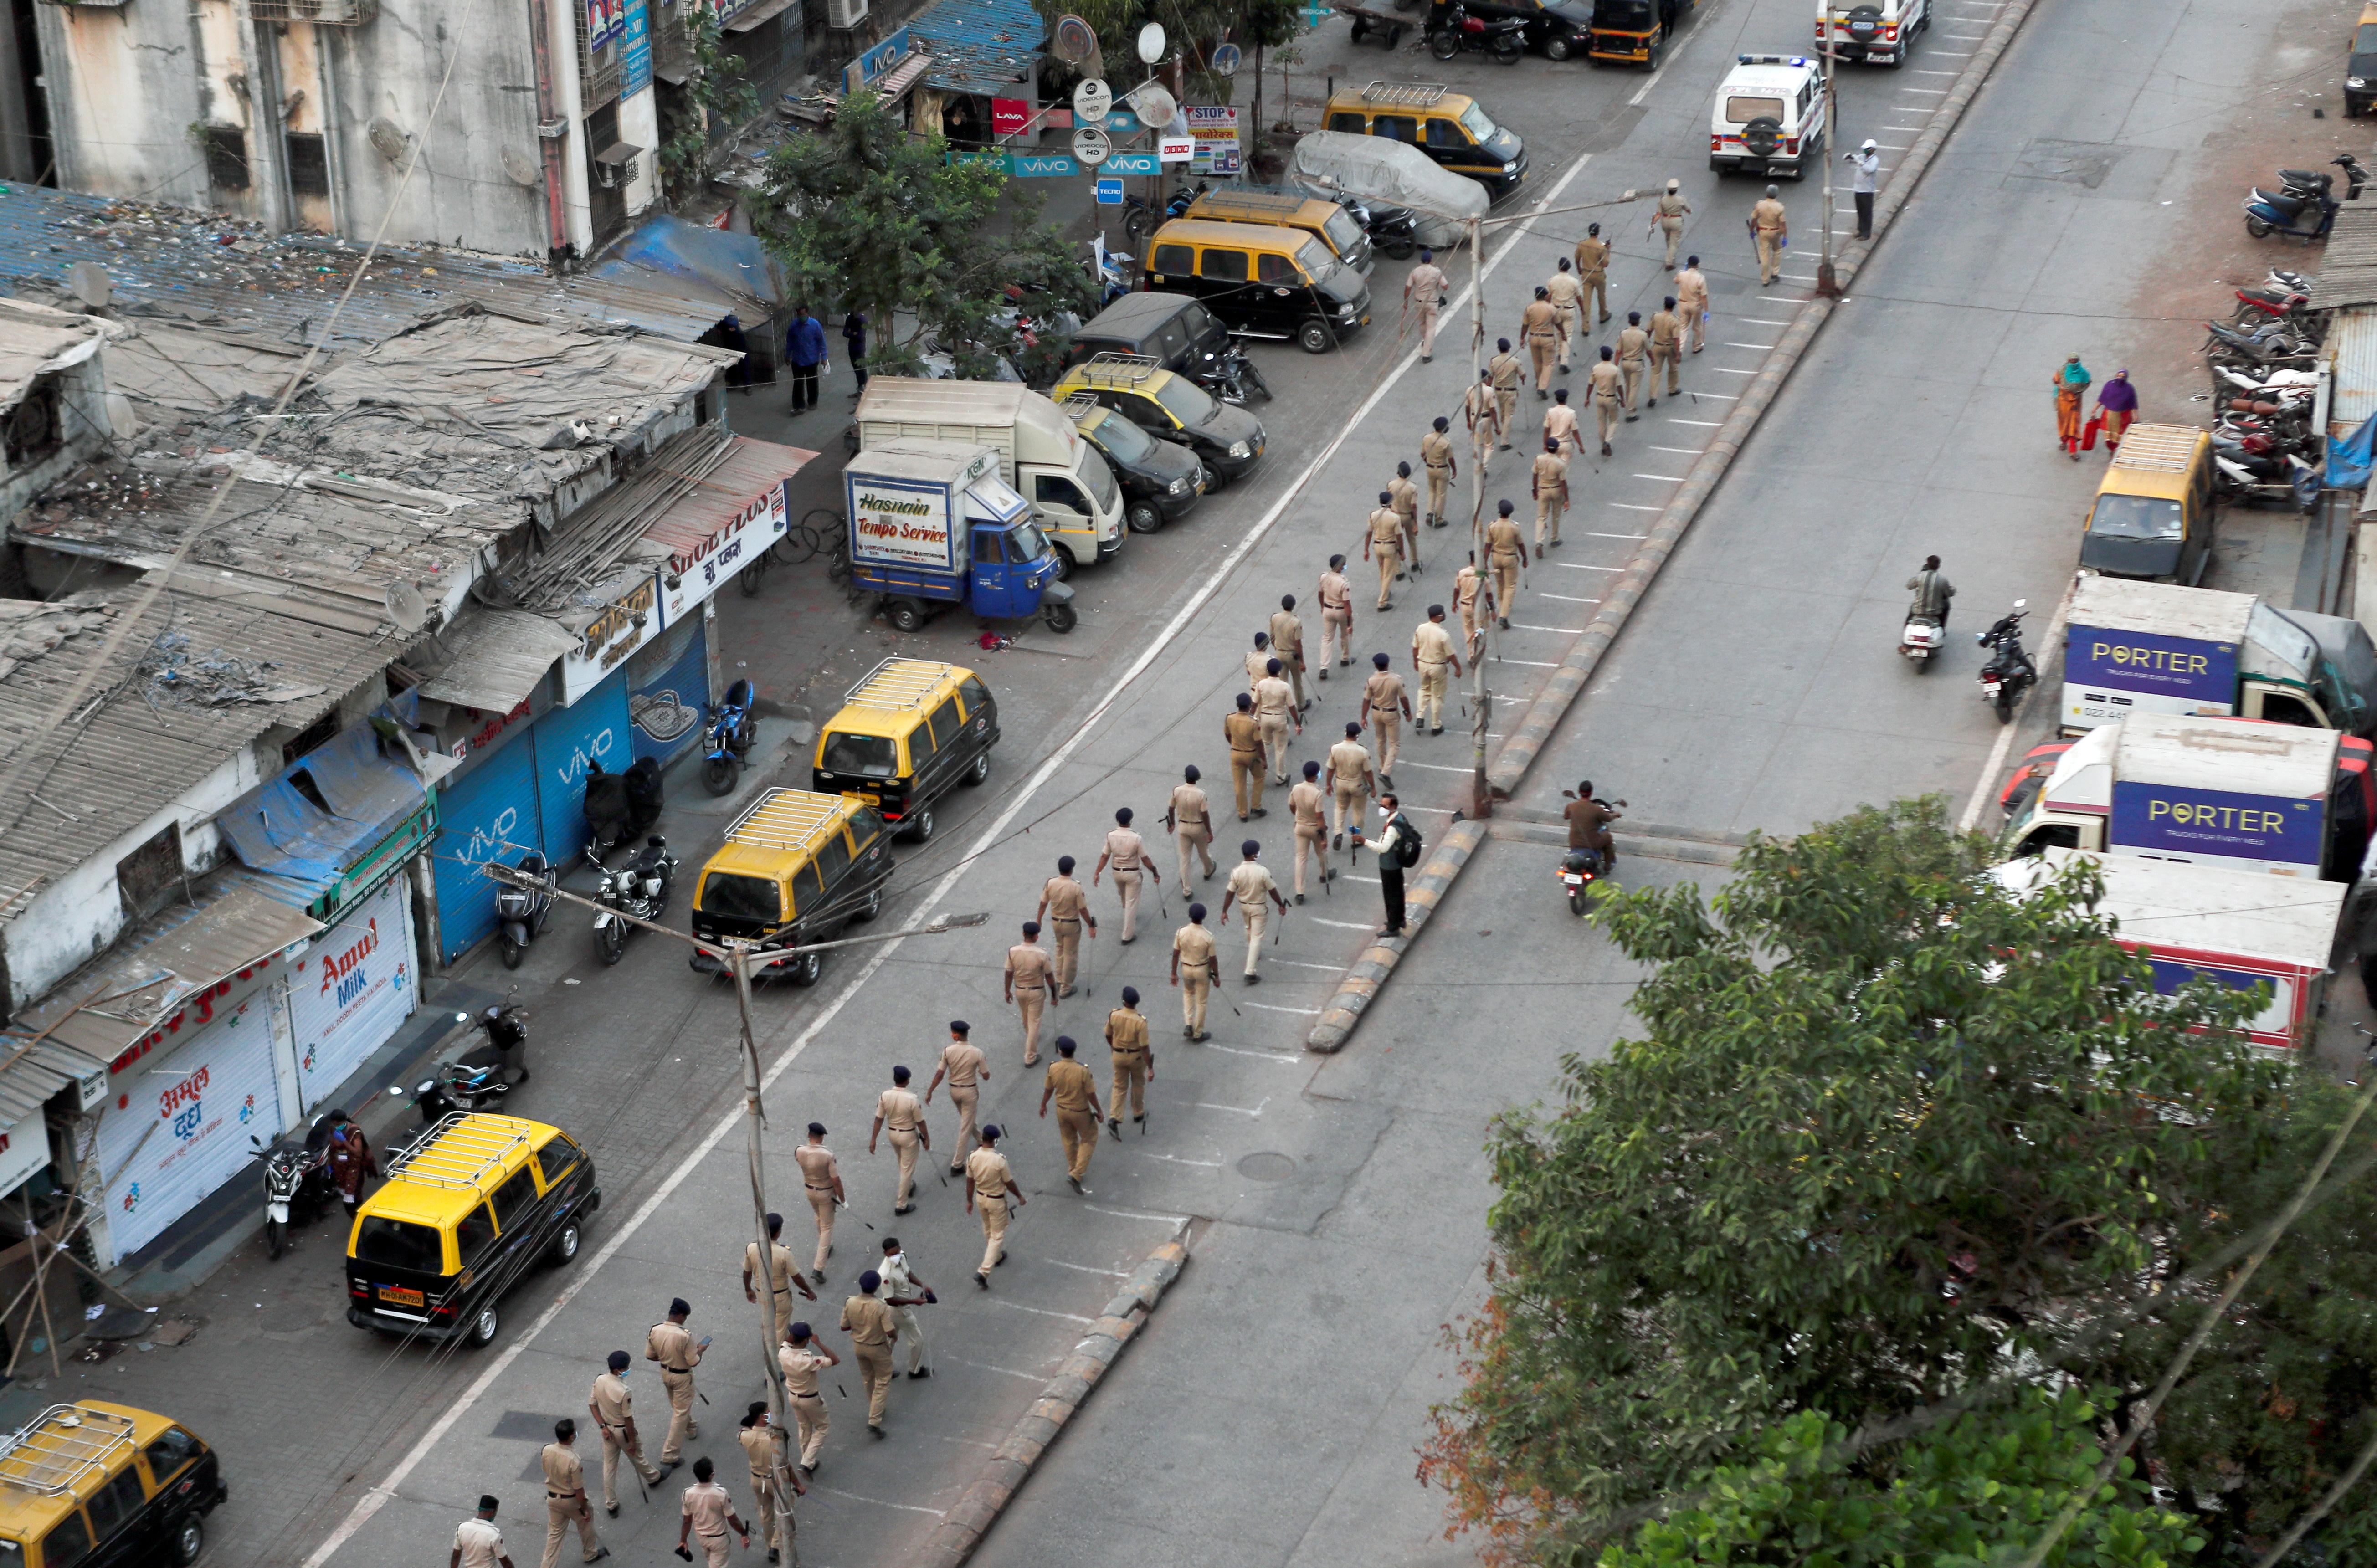 Police officers march on a street in Dharavi, one of Asia's largest slums, after the extension of the lockdown in Maharashtra state, to control the spread of coronavirus disease (COVID-19), in Mumbai, India, April 11, 2020. Photo: Reuters